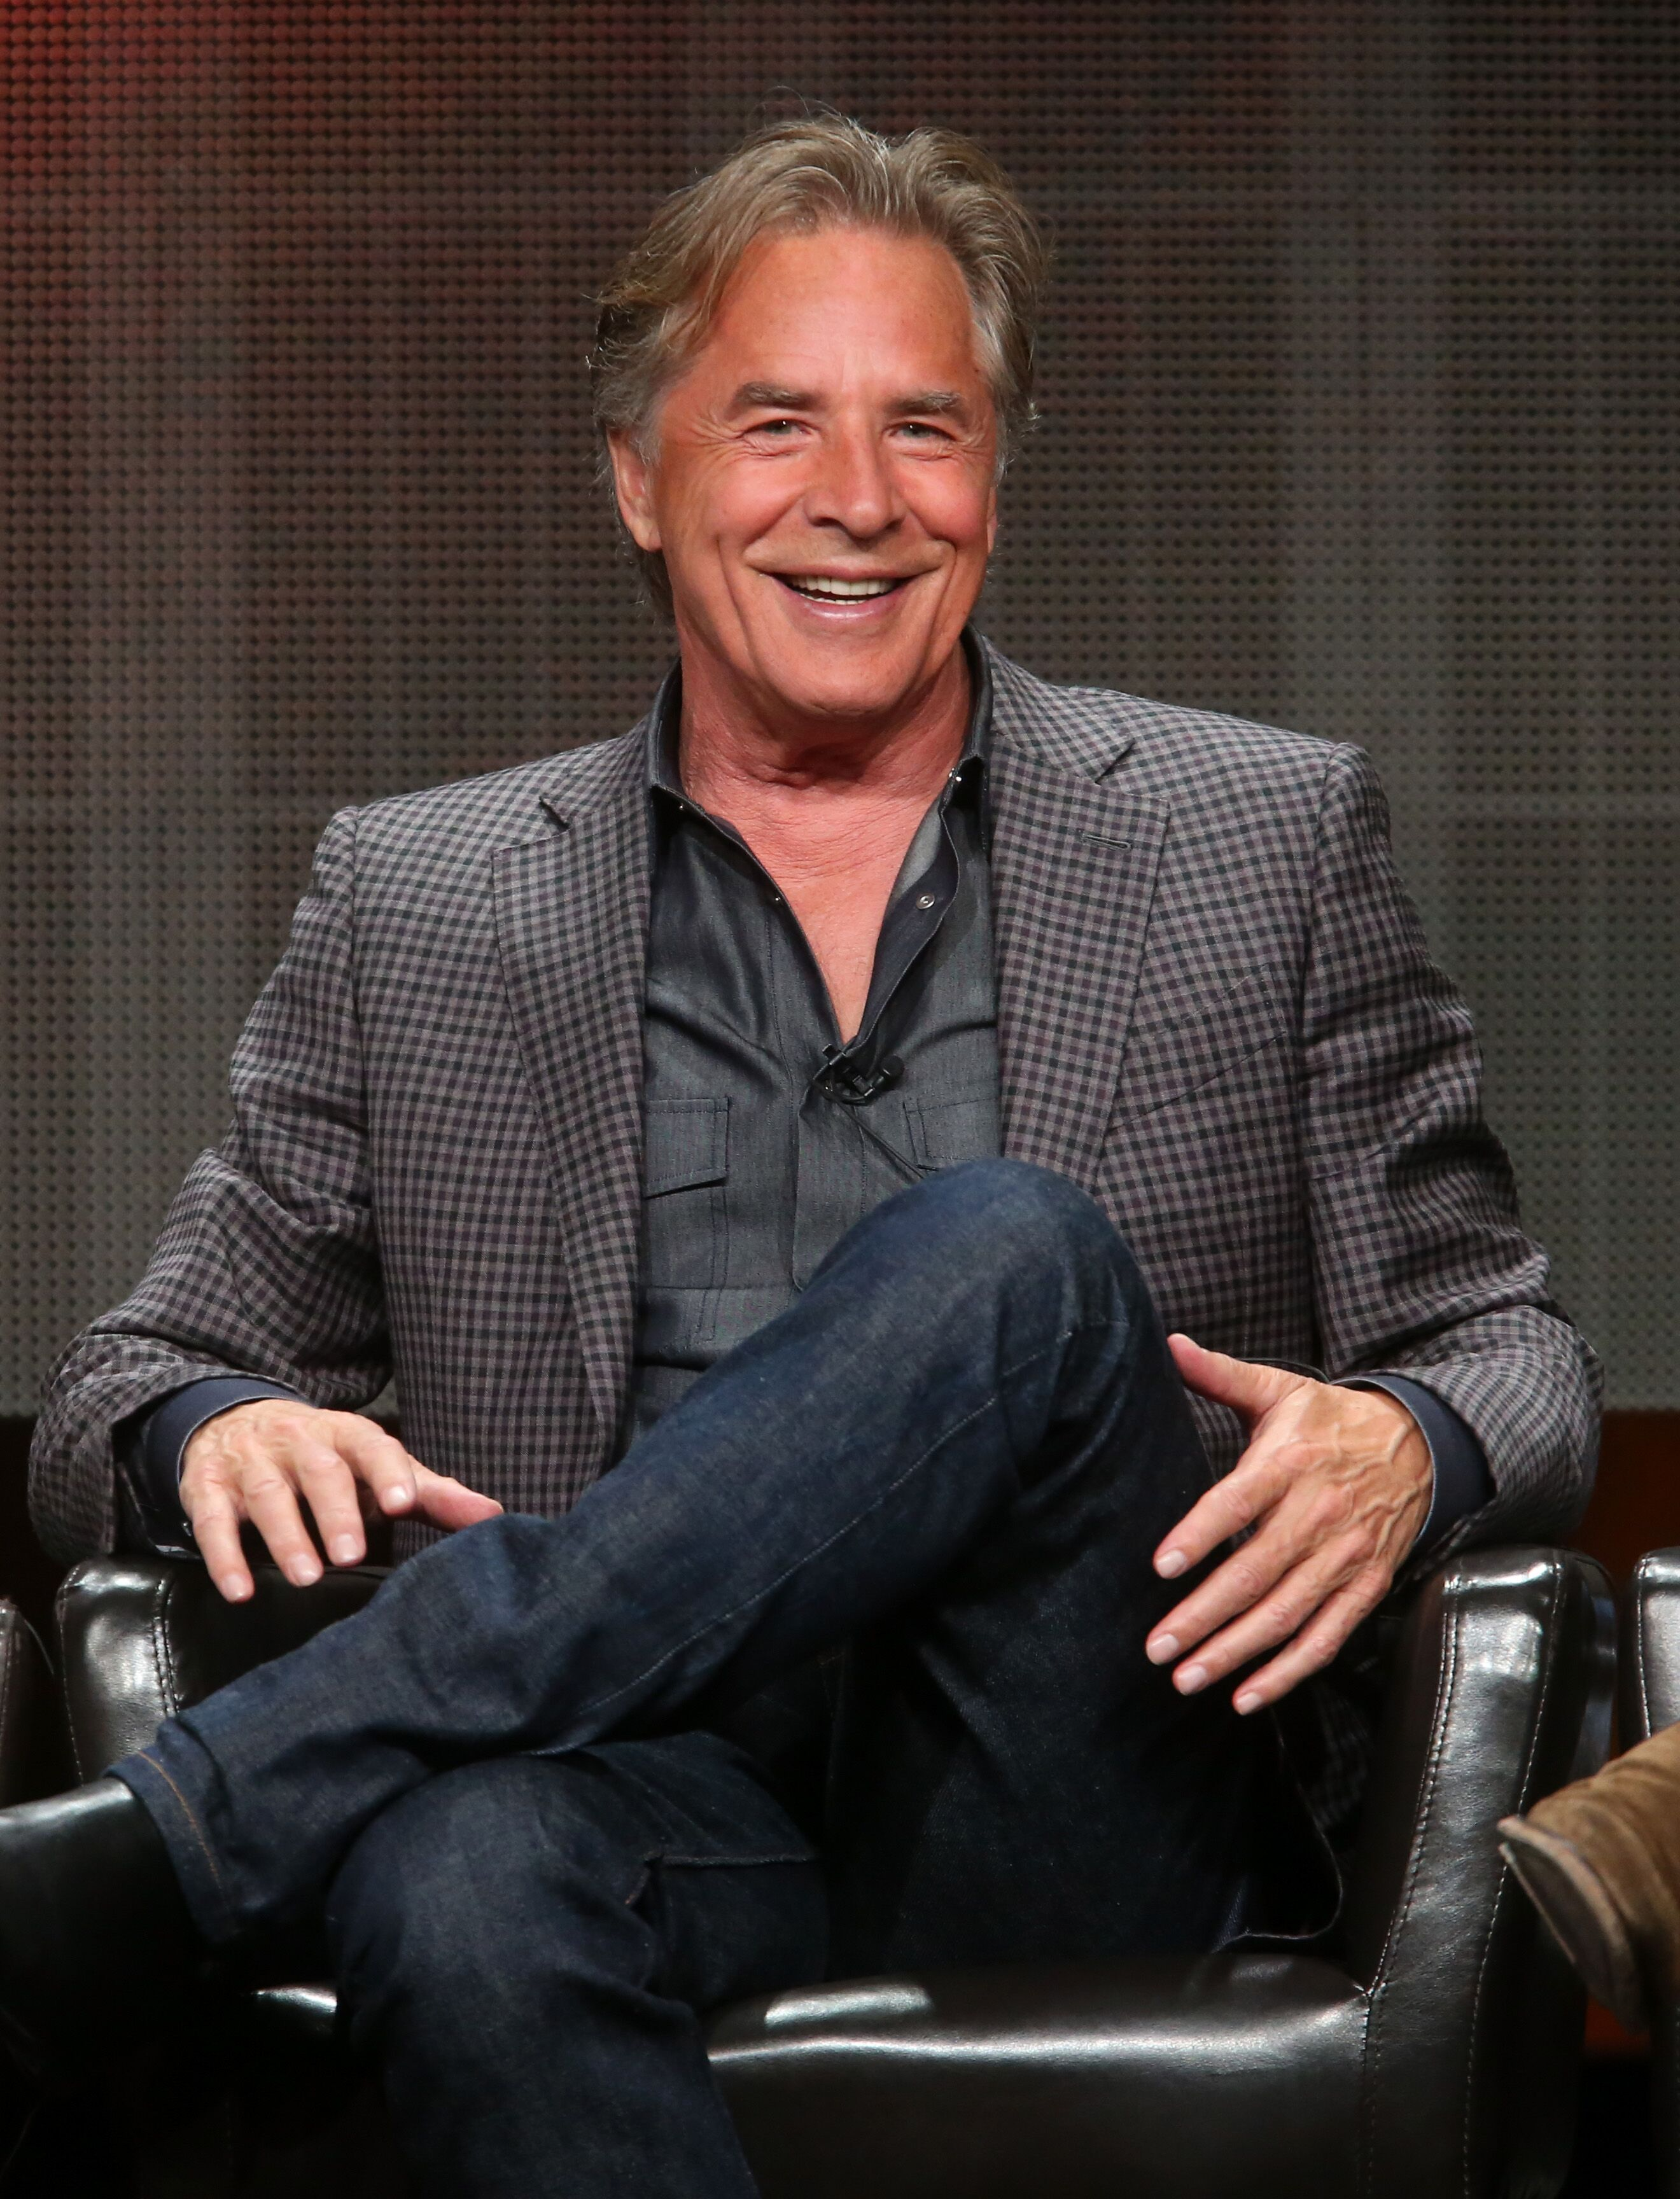 Actor Don Johnson speaks onstage during the 'Blood & Oil' panel discussion at the ABC Entertainment portion of the 2015 Summer TCA Tour | Getty Images/ Global Images Ukraine